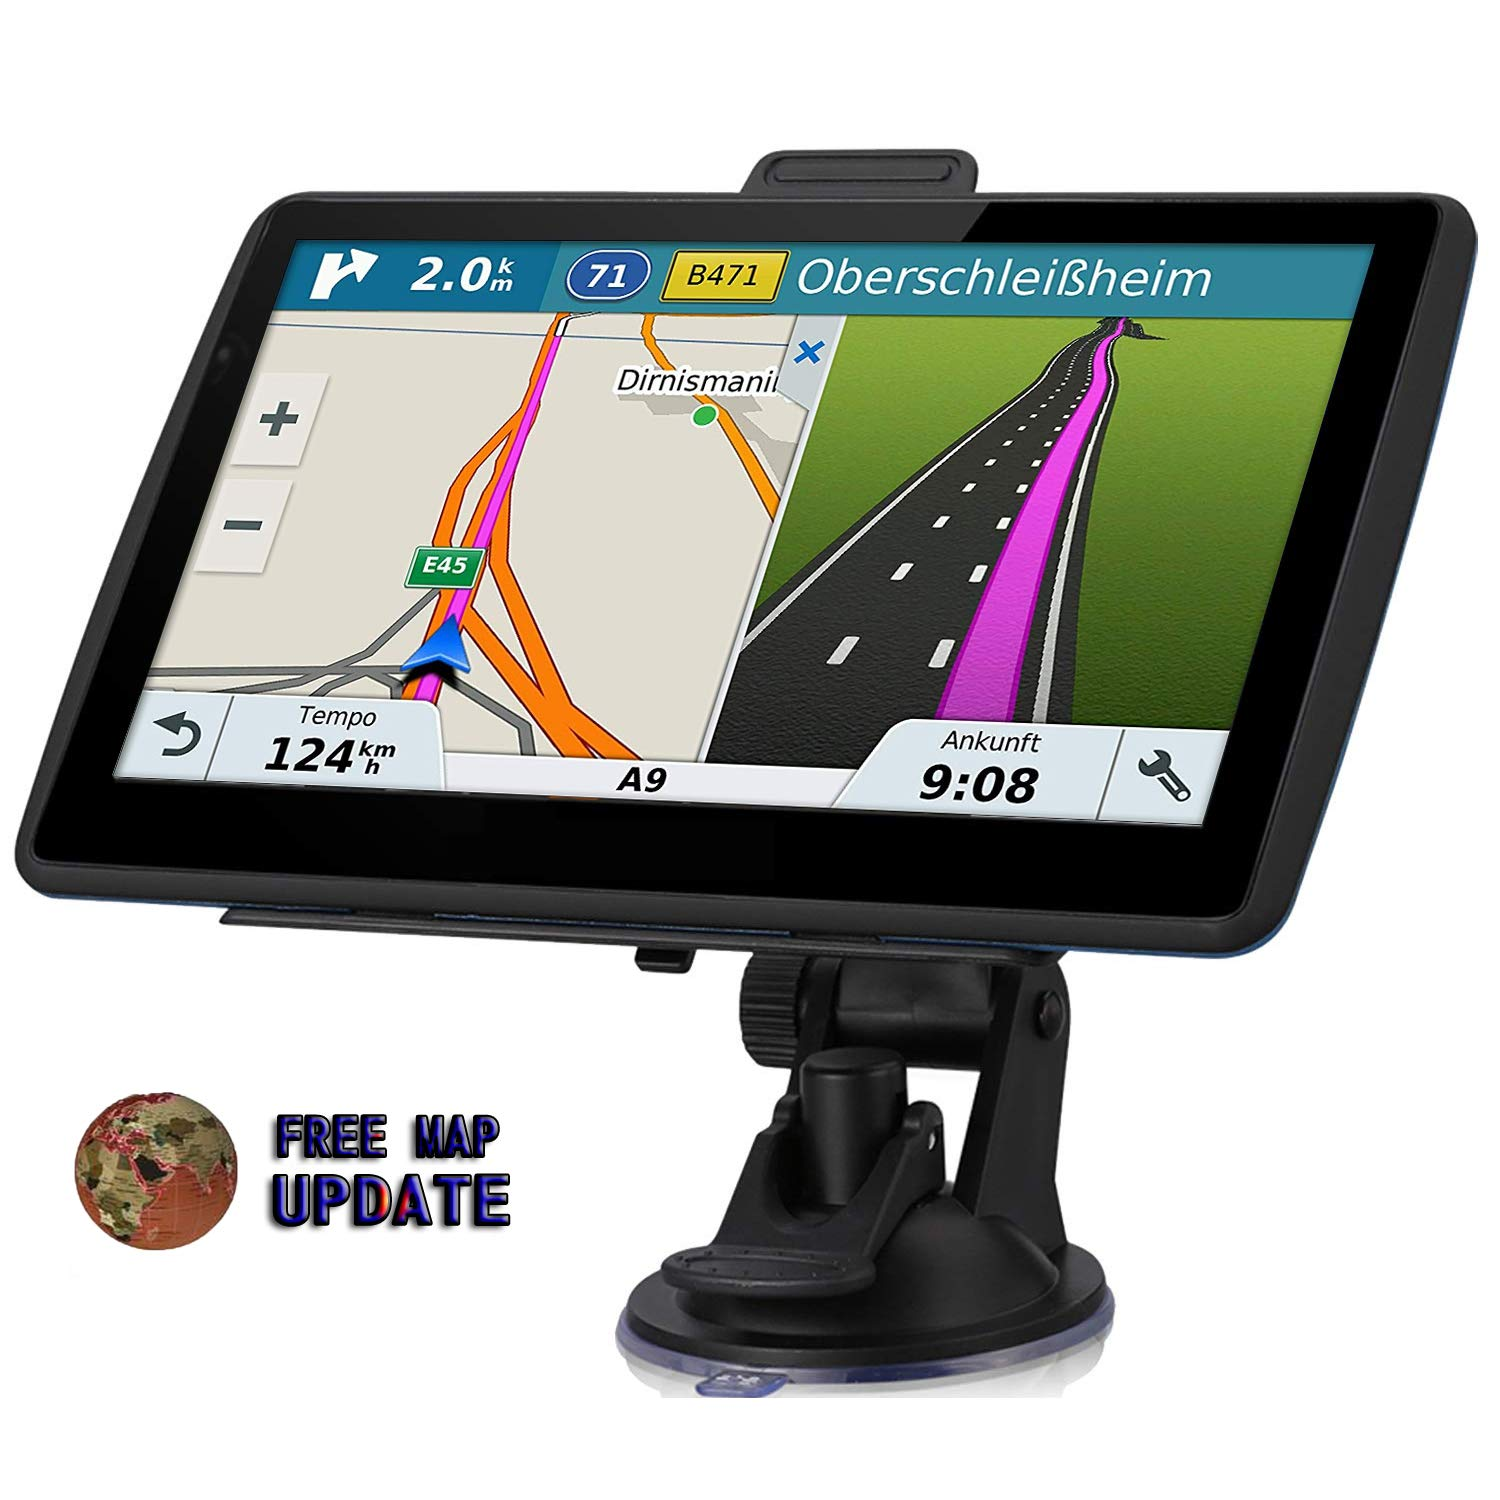 GPS Navigation for Car, 7-inch HD GPS 256-8GB Voice Broadcast Navigation, top-Loading North America map (USA, Canada, Mexico map) Lifetime map Free Update by JANFUN